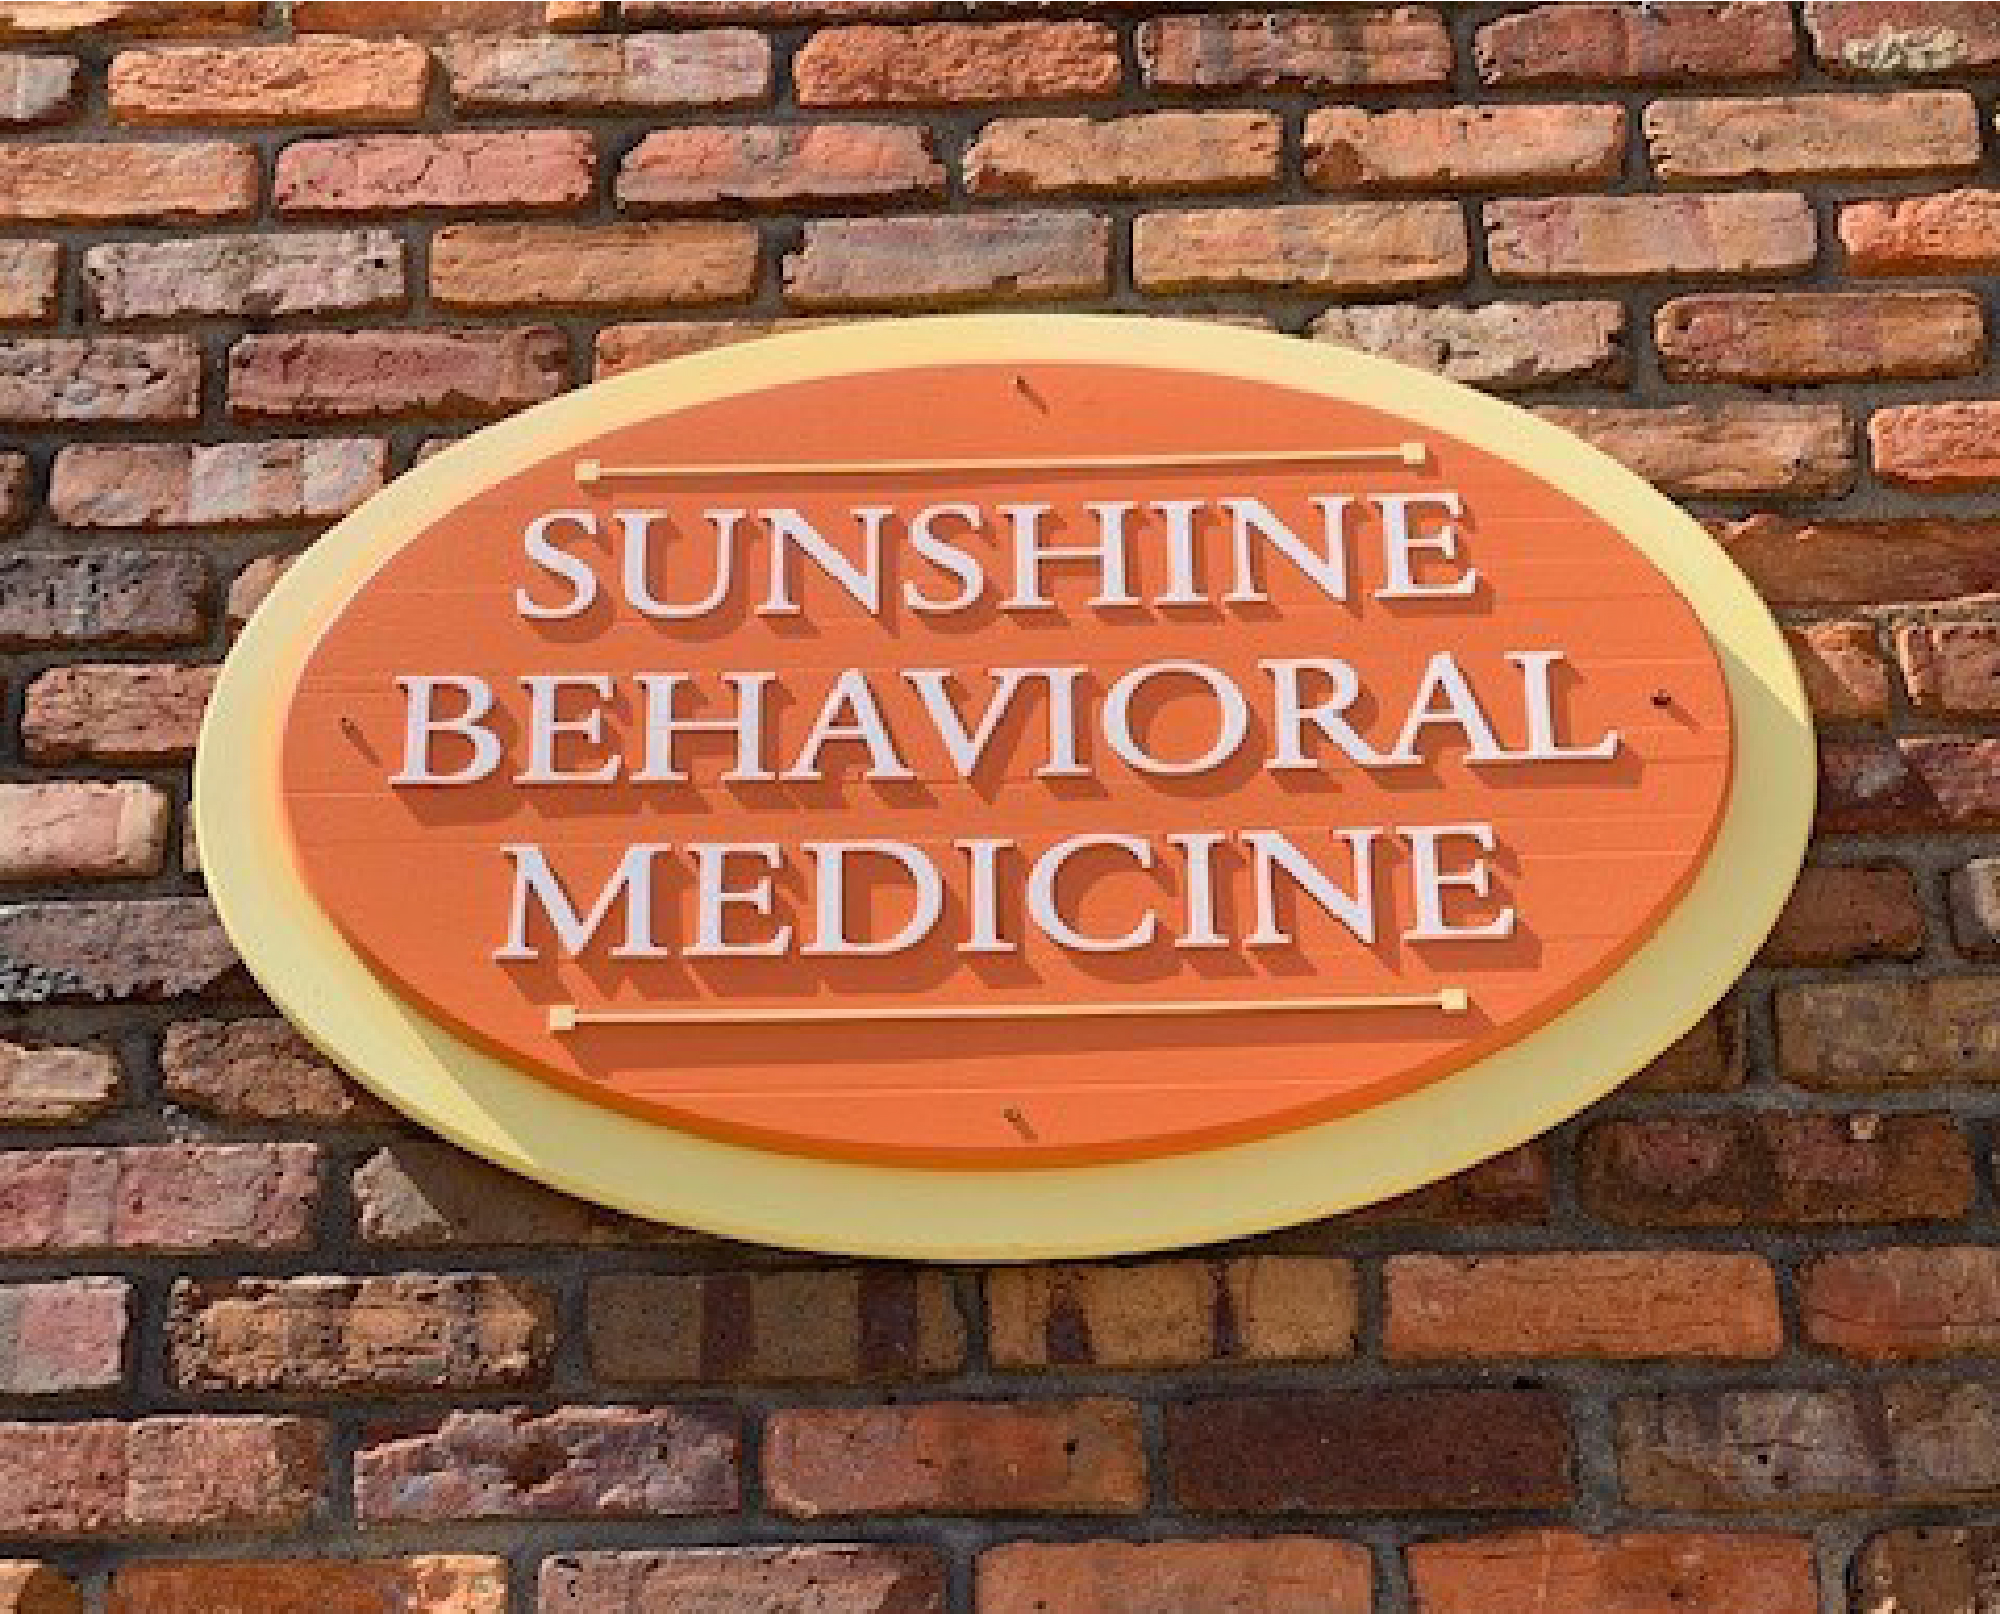 Sunshine Behavioral Medicine sign